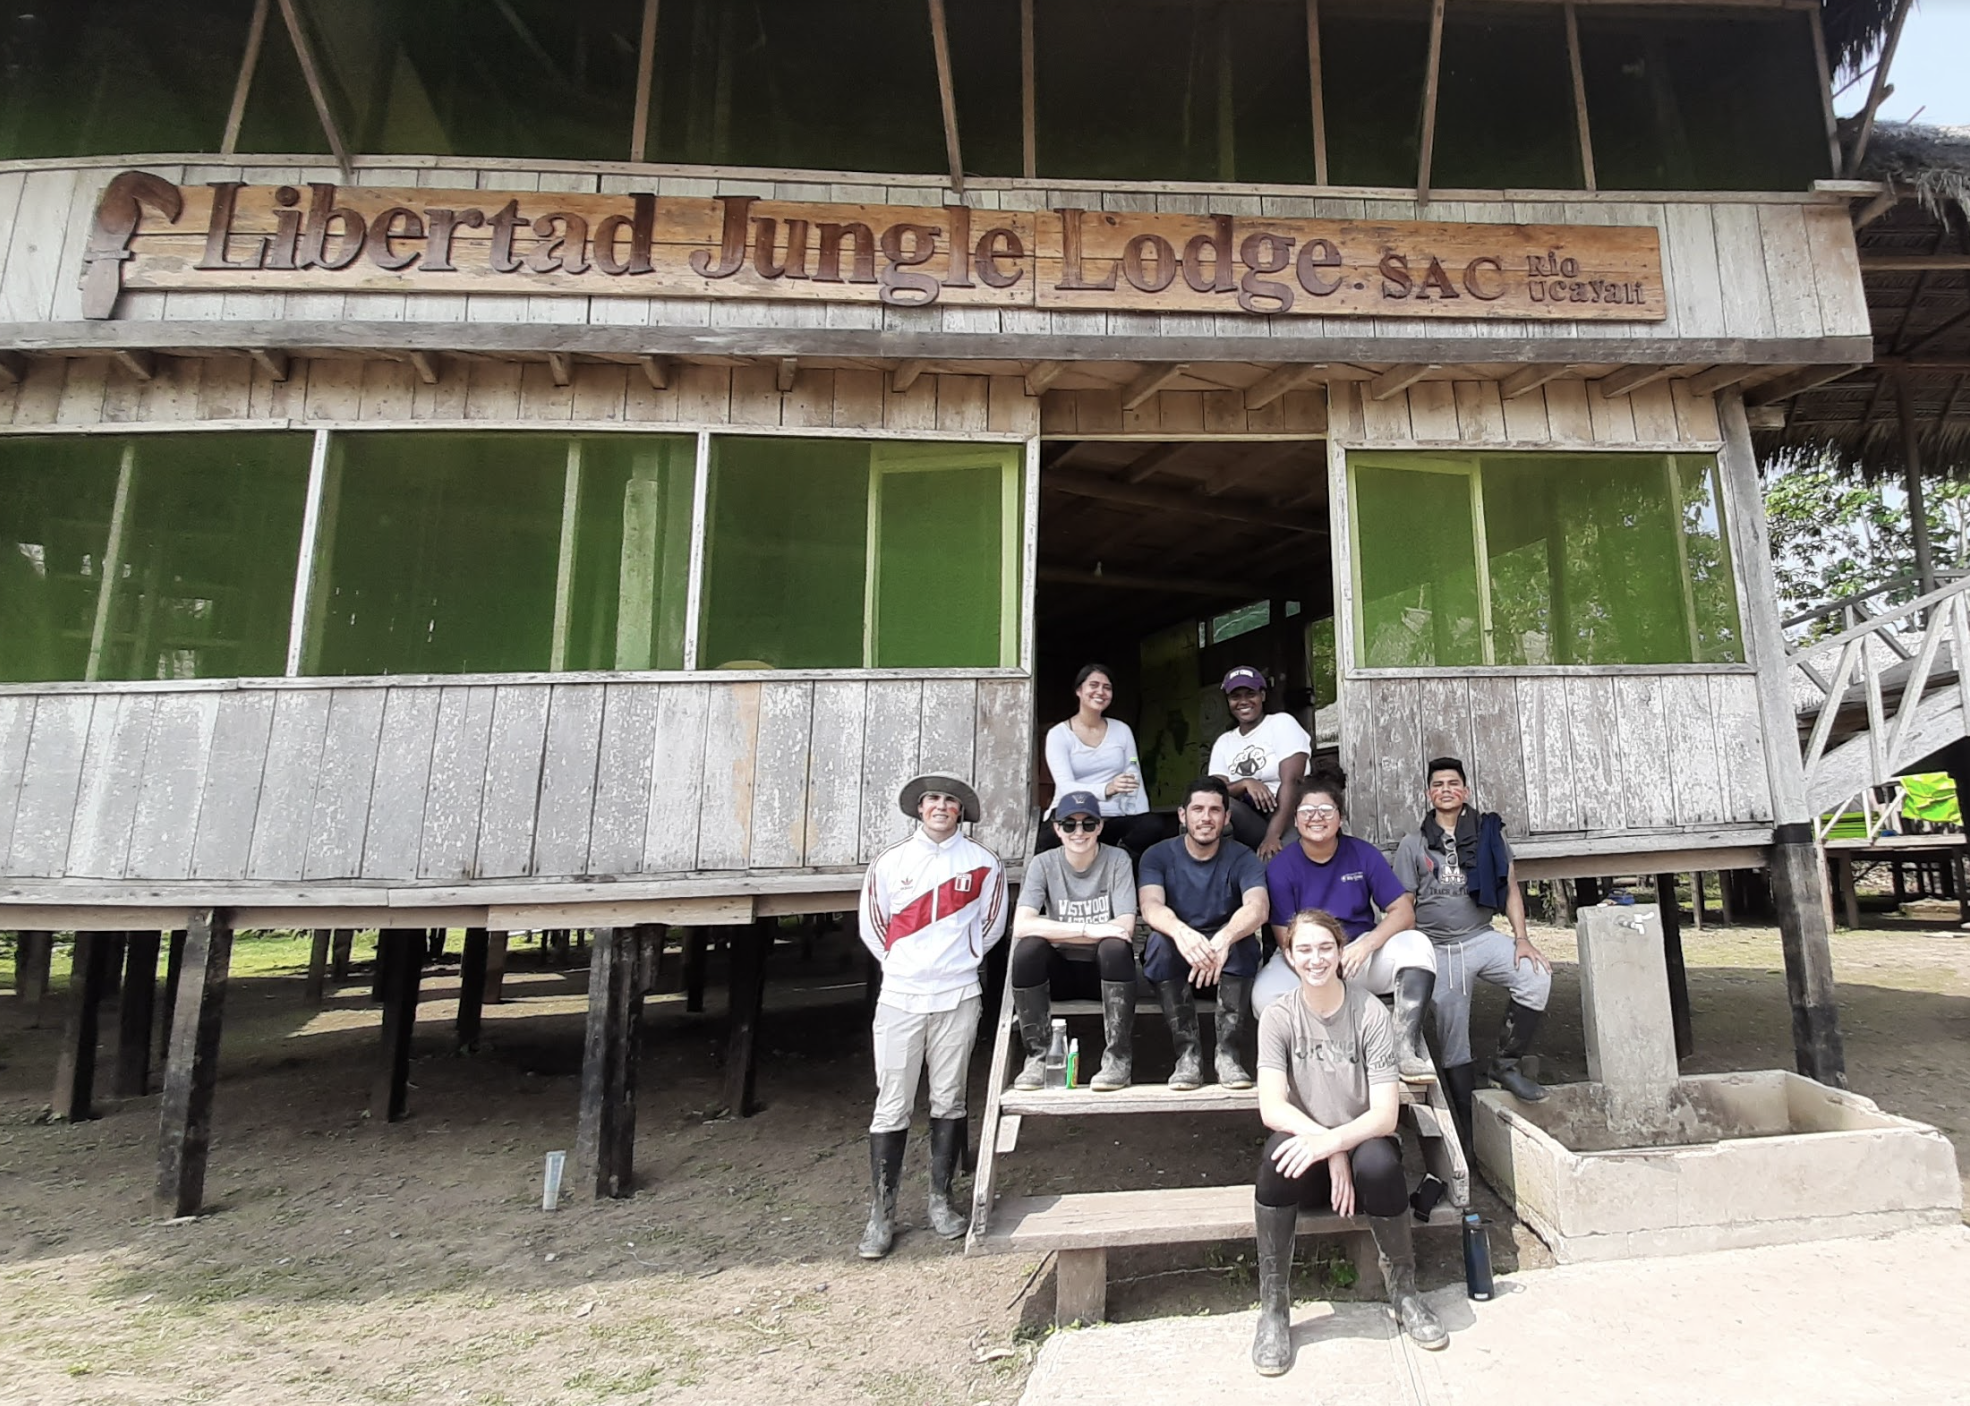 The group posed in front of the Libertad Jungle Lodge, an accommodation and community within the Iquitos area of Peru.